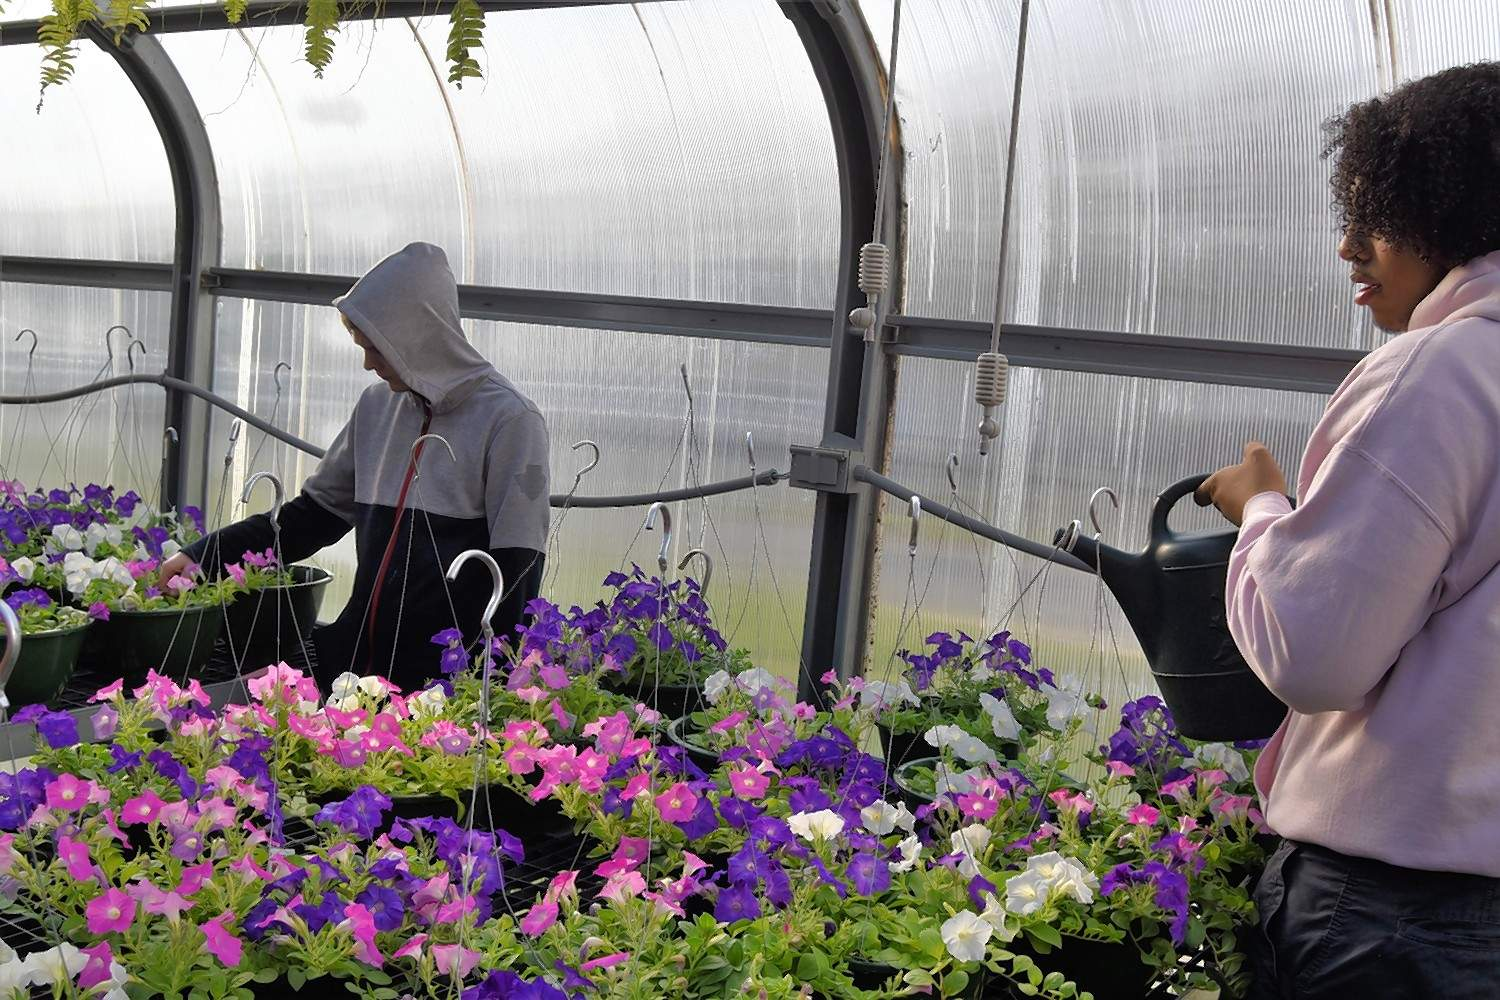 Zach Gibbs, right, waters hanging baskets of petunias Wednesday morning while Ricky Choate examines some flowers.